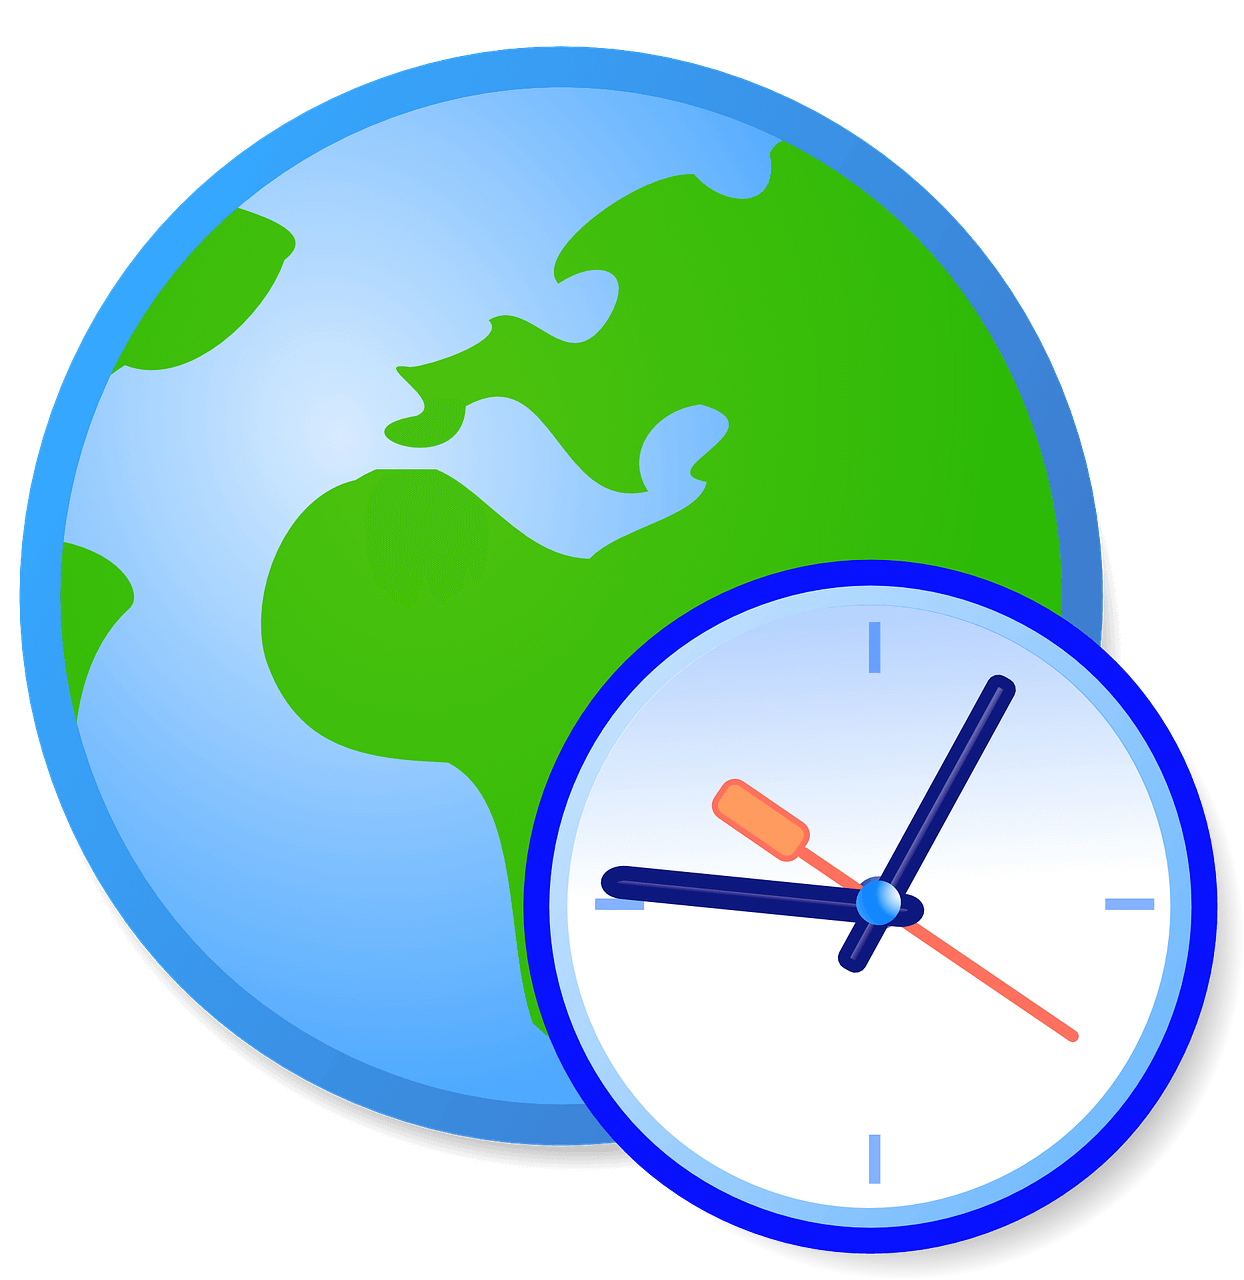 Daylight Saving Time Fun Facts To Make Up For That Lost